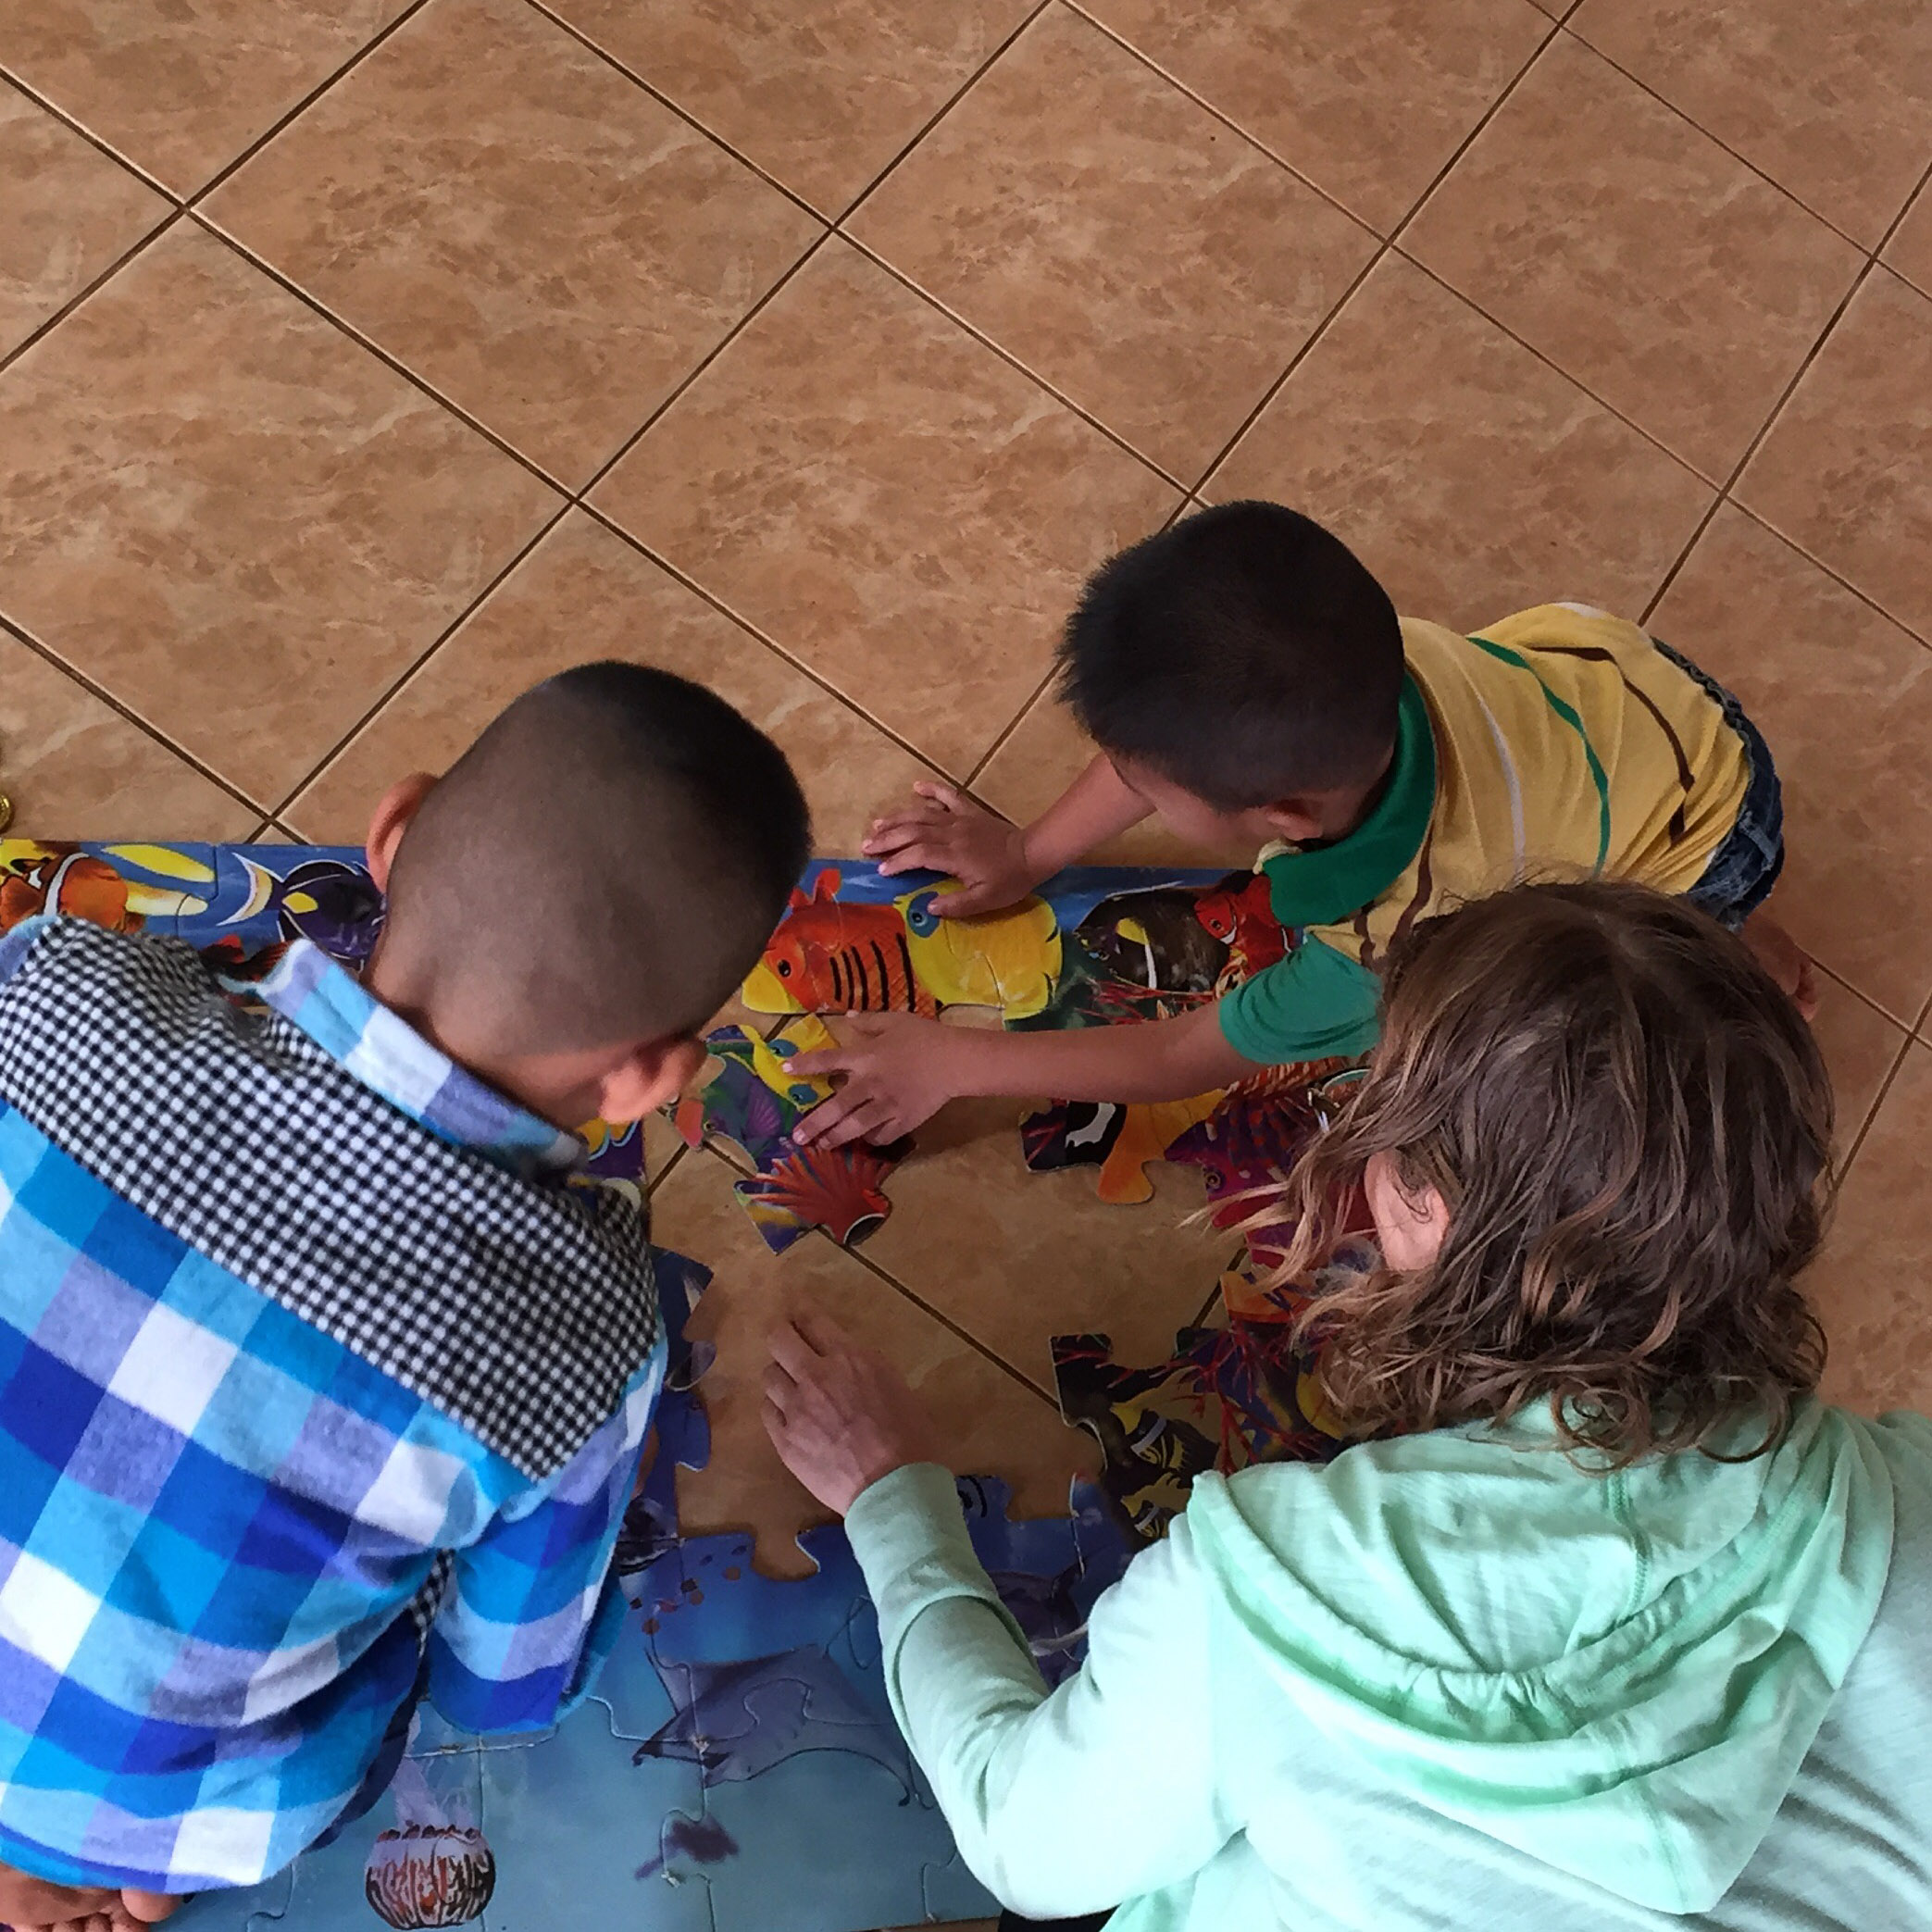 Susan and I put together puzzles with children on Saturday while their parents attended an education and activity day with the patients and social workers.